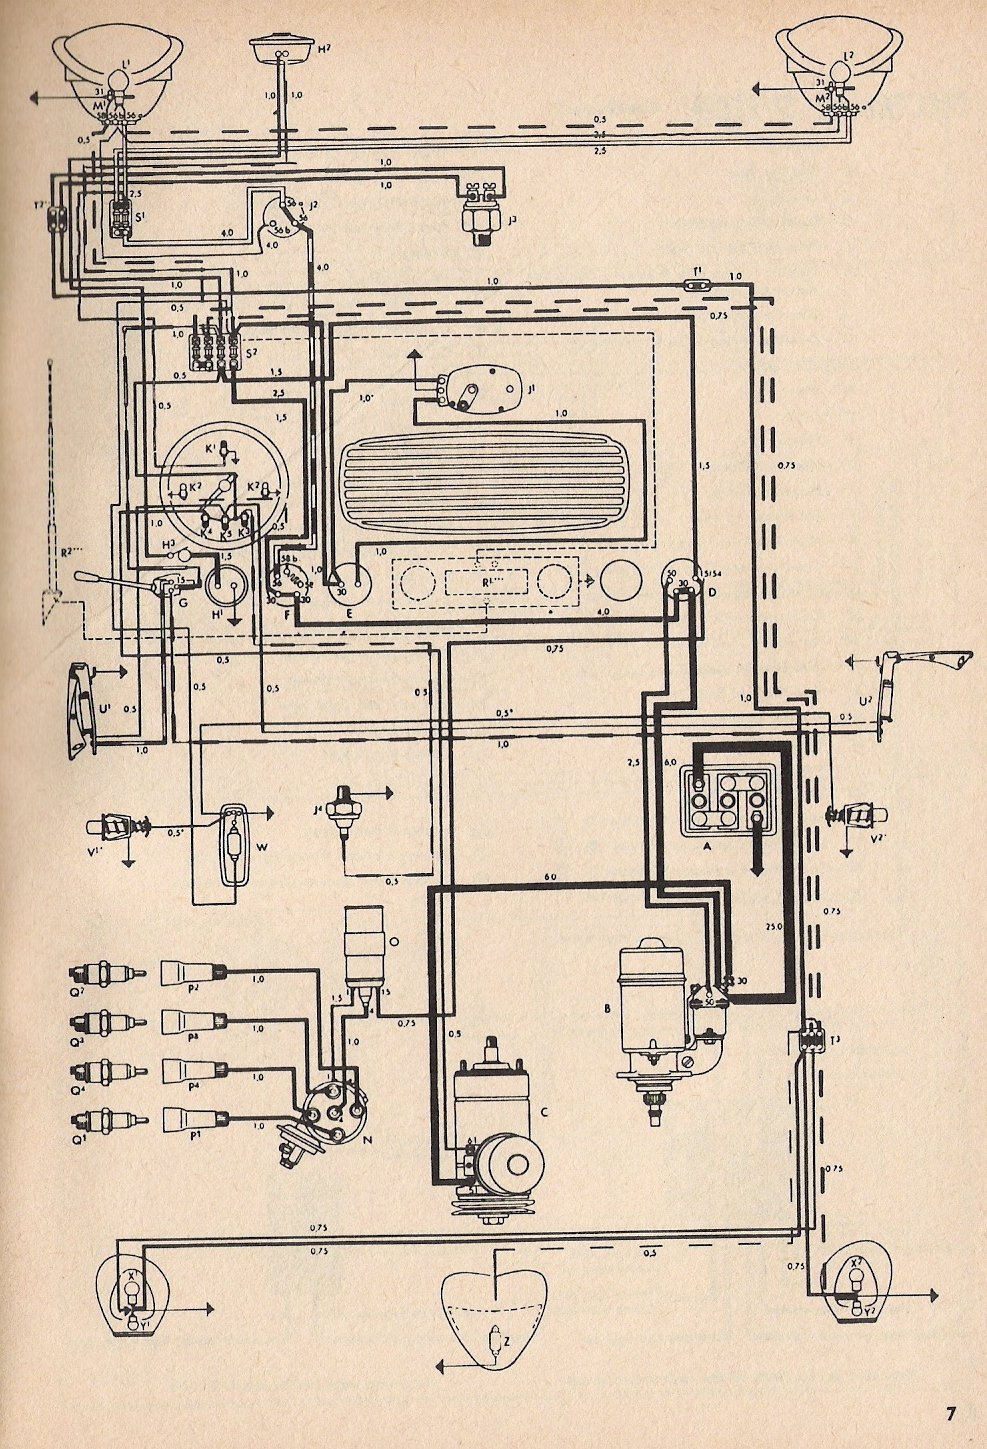 72 vw engine diagram com type wiring diagrams volkswagen bug com type wiring diagrams